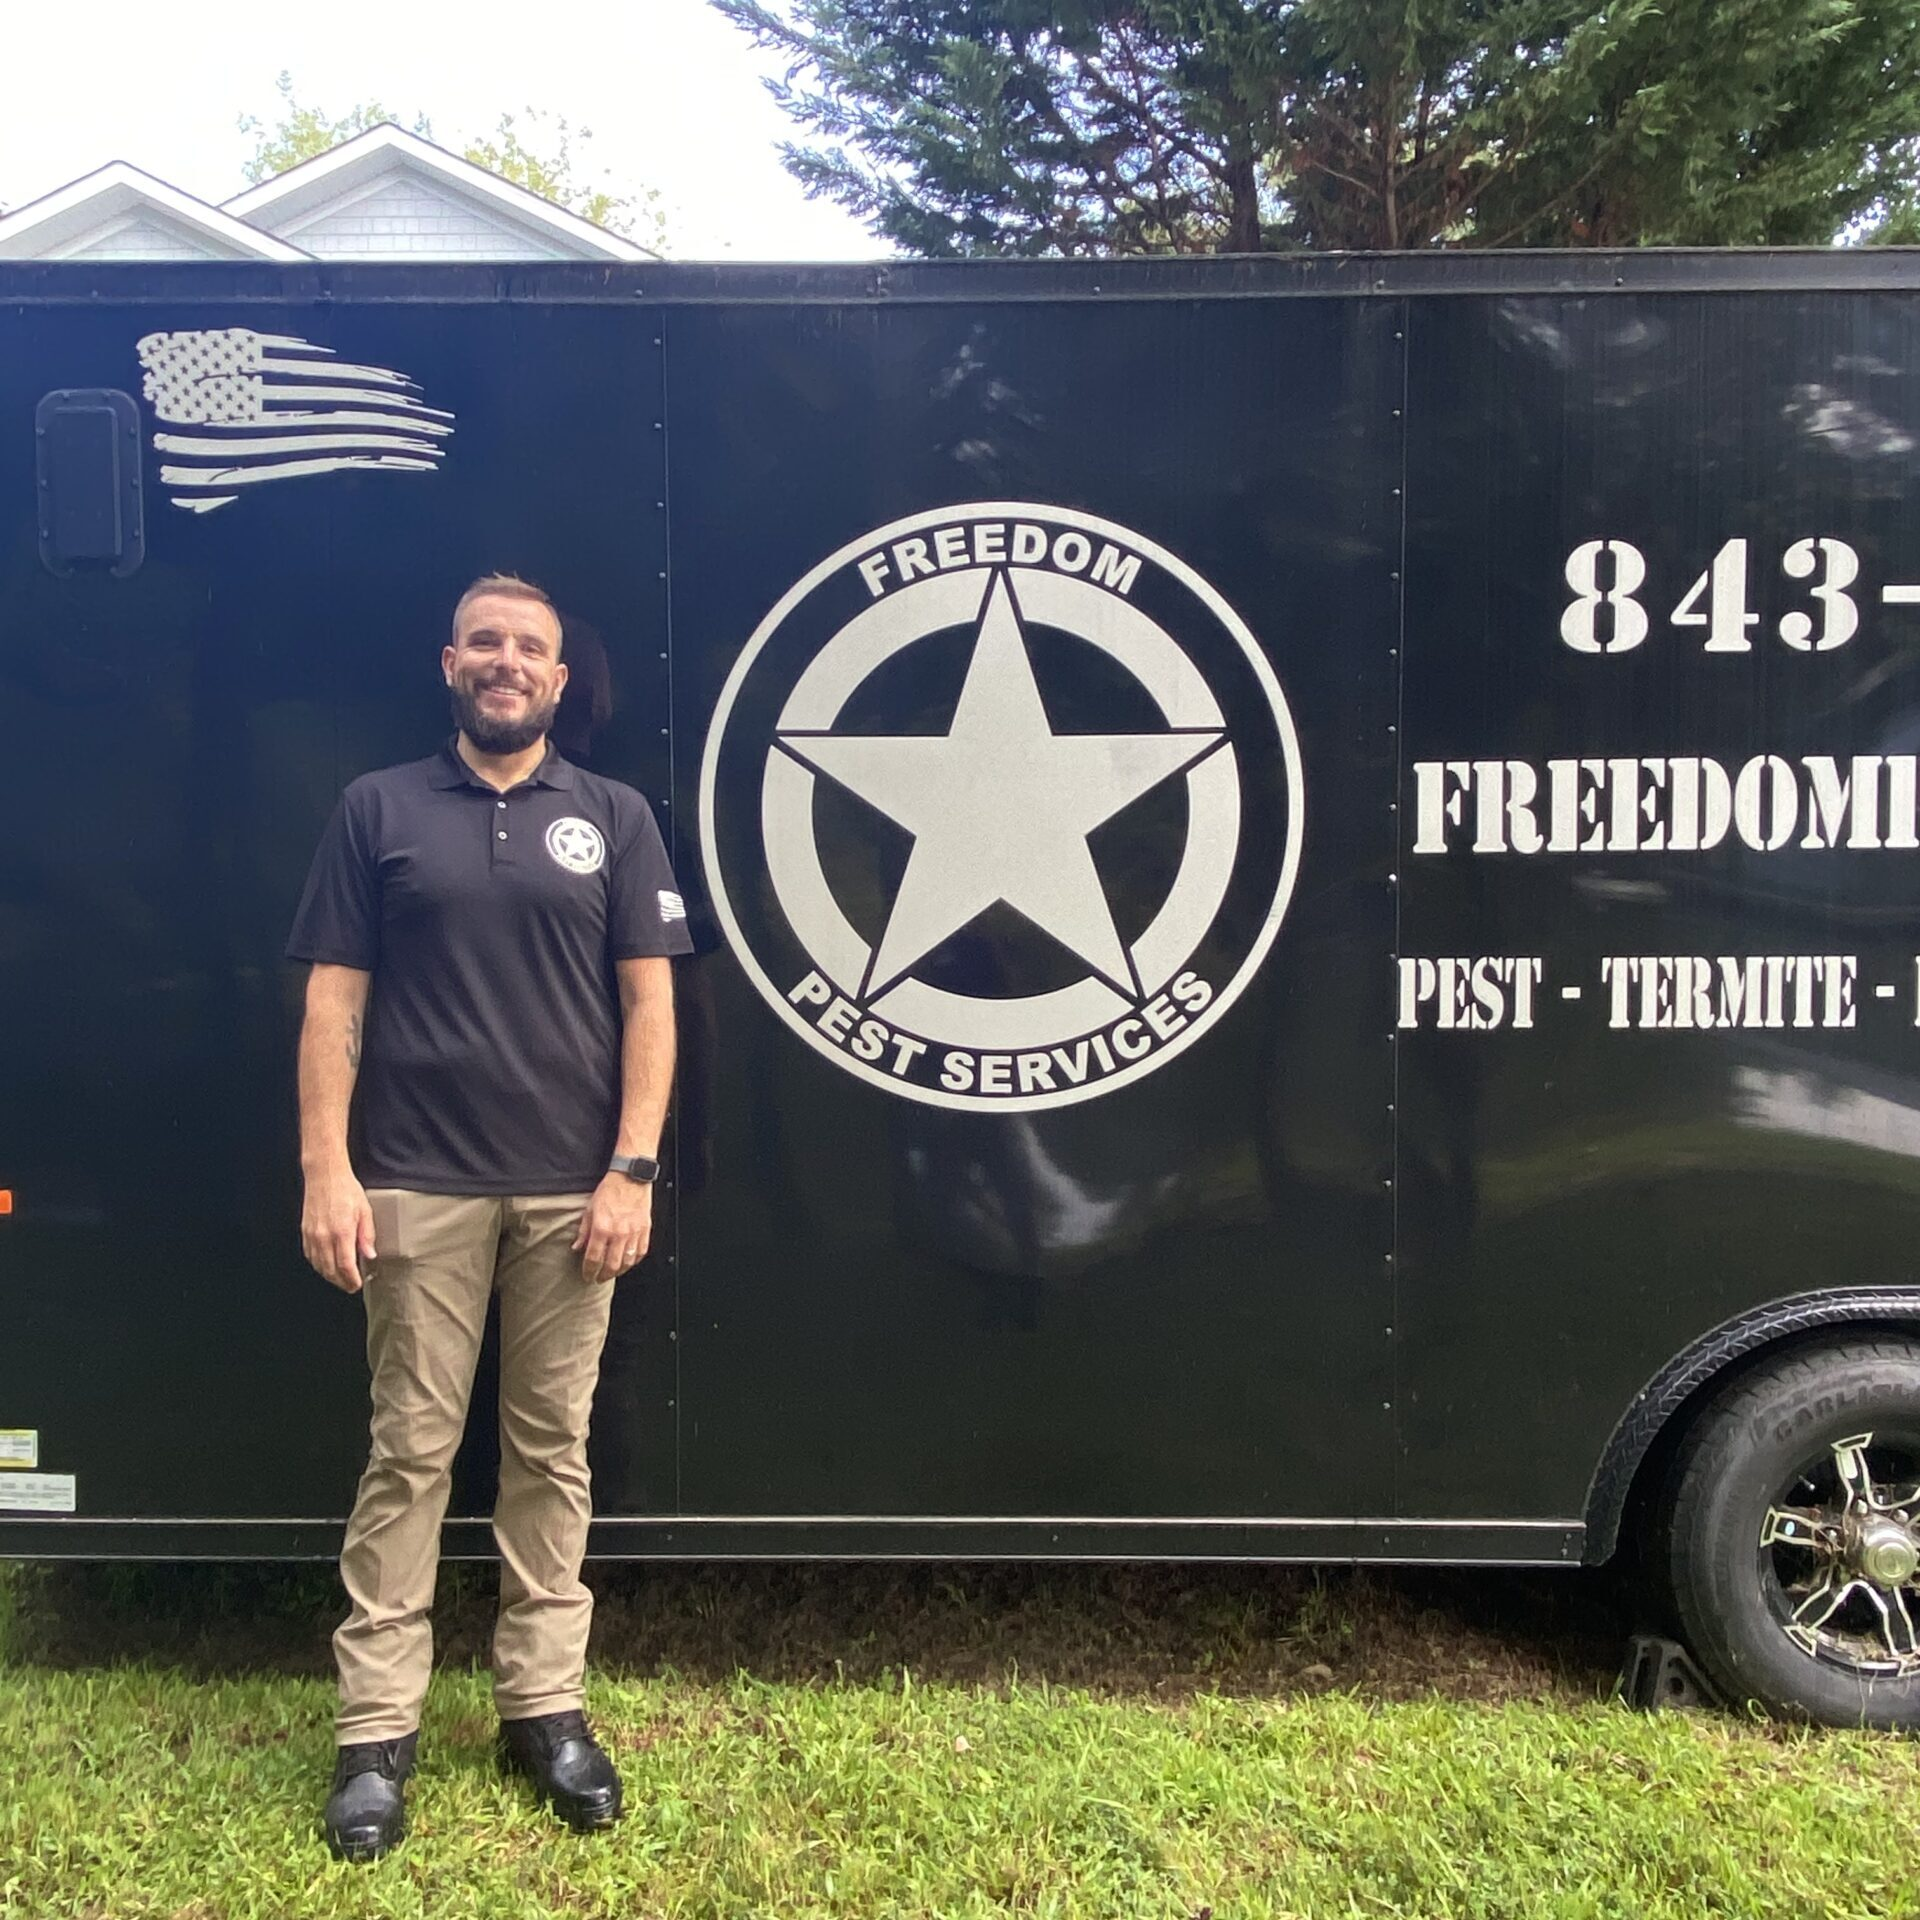 Dale Perry |Freedom Pest Services